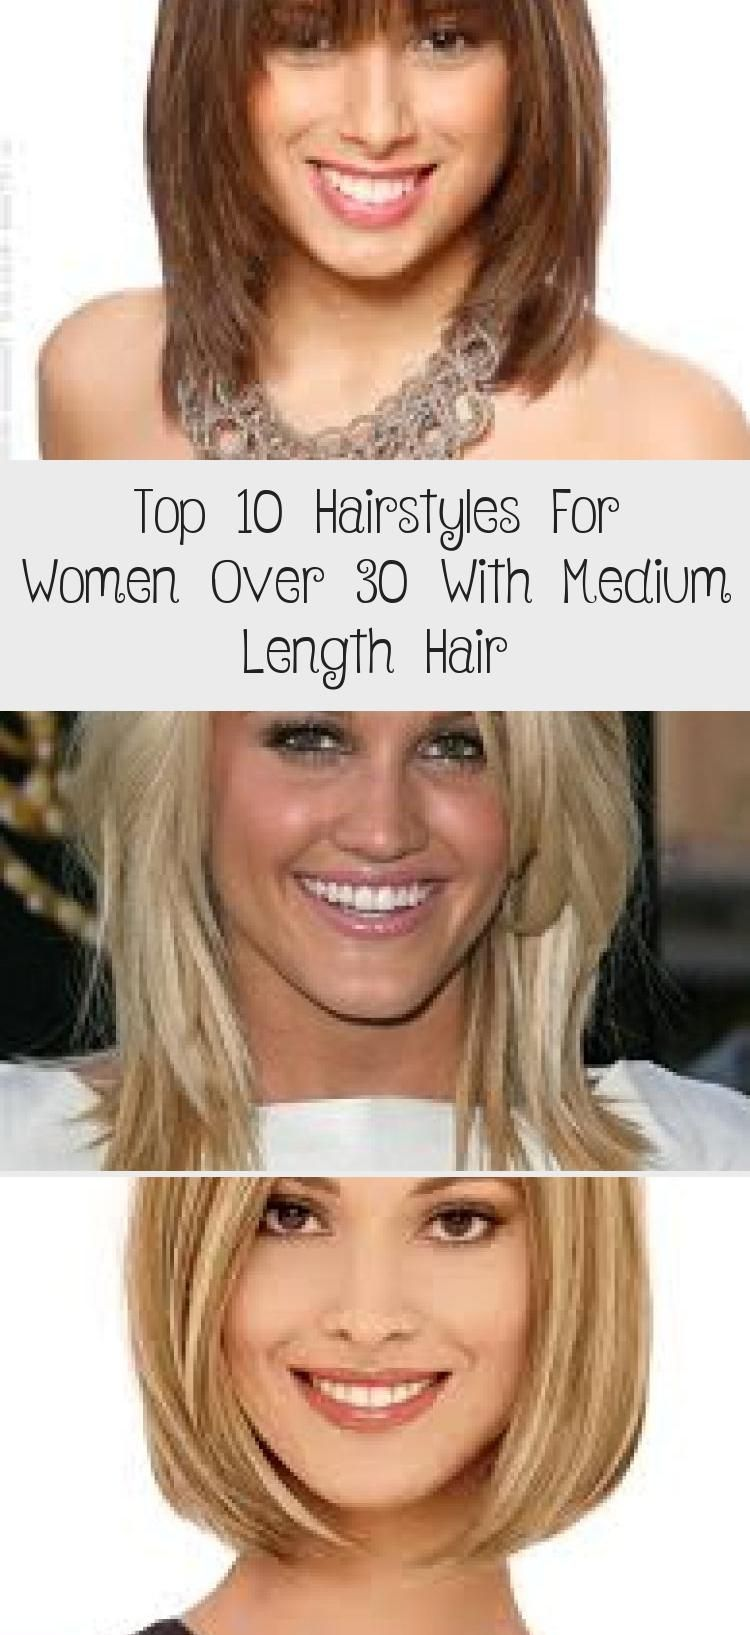 Top 10 Hairstyles For Women Over 30 With Medium Length ...